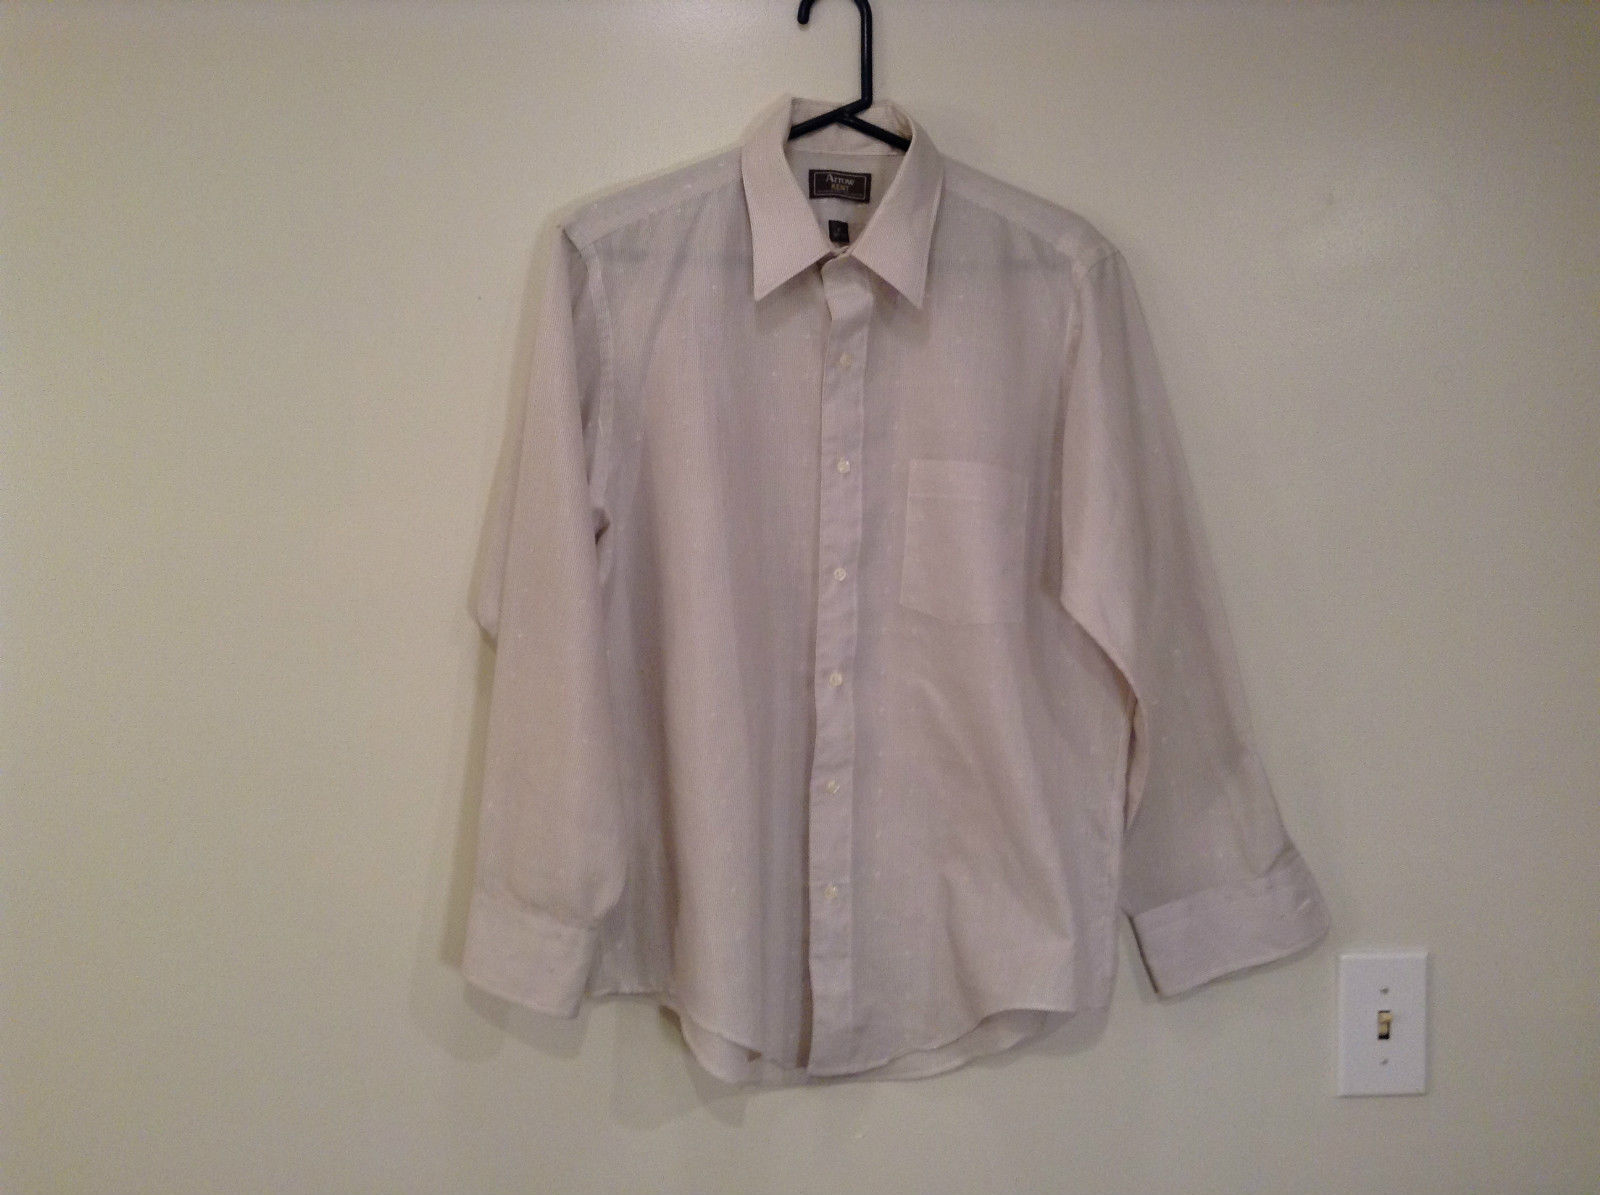 Arrow Kent Size 16 Long Sleeve Button Up Shirt White with Tiny Stripes